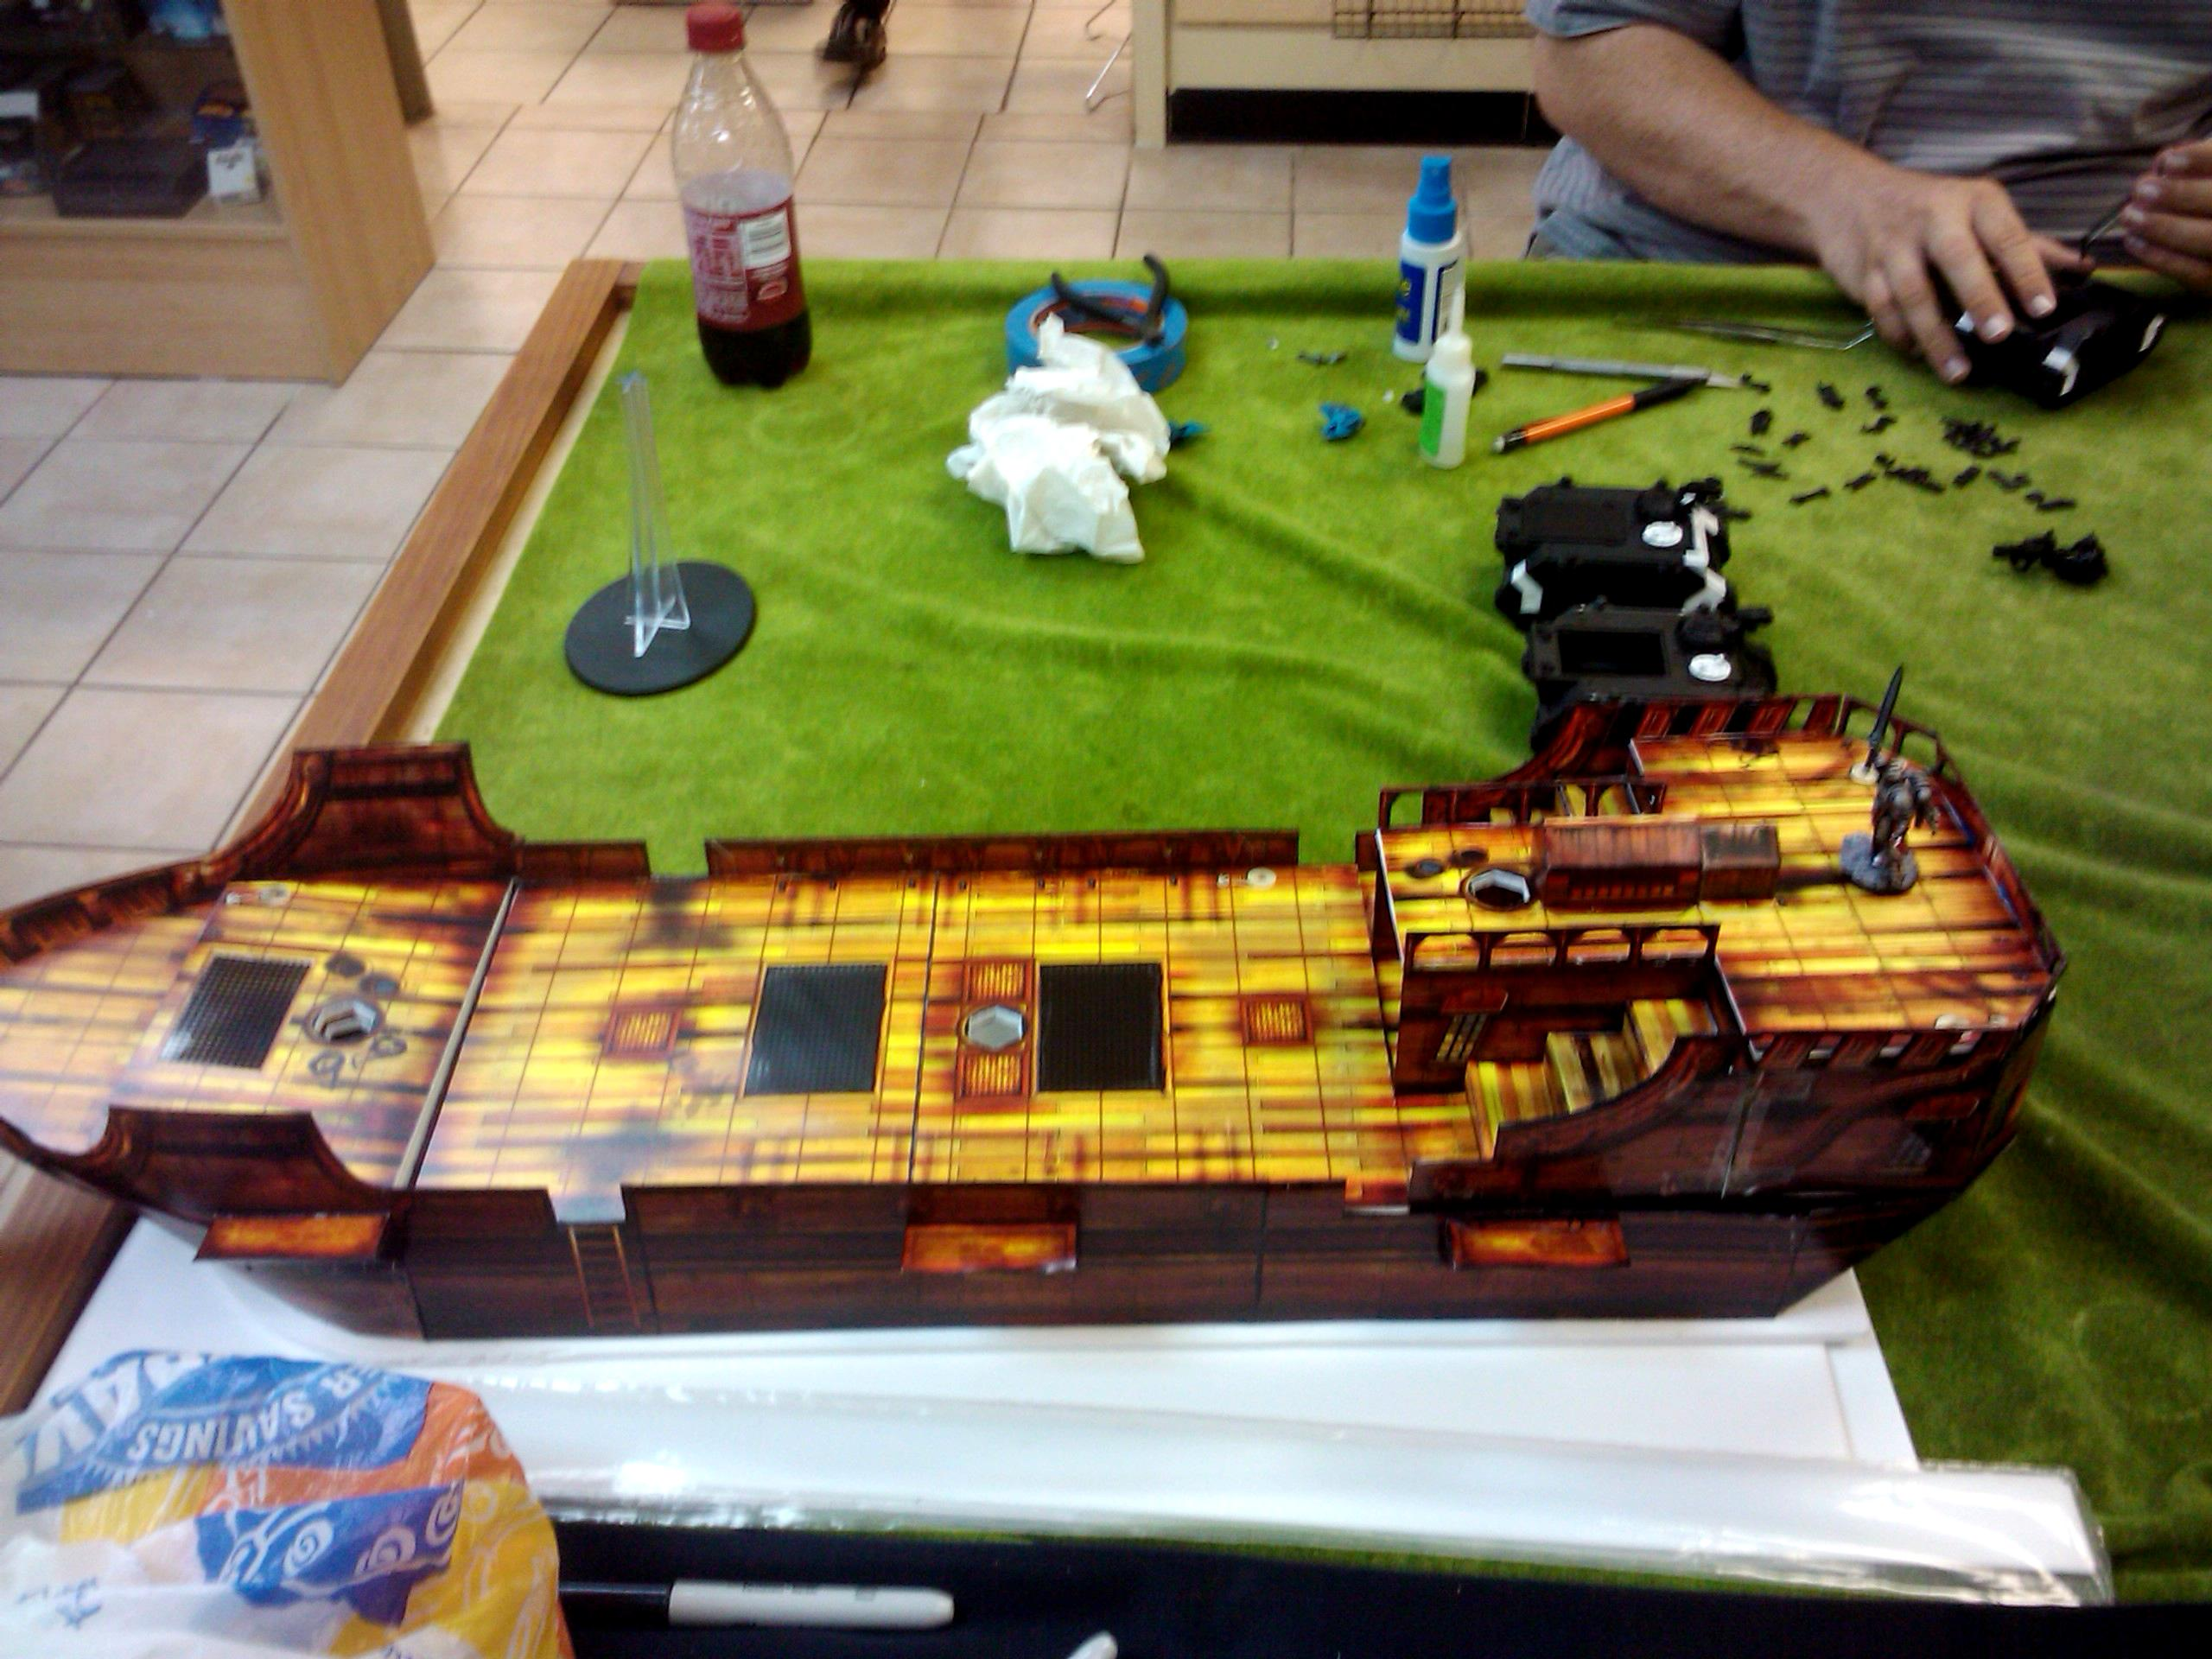 Build, Cardstock, Hobby, Maiden, Painting, Paper, Project, Ship, Terrain, World Works Games, Worldworks, Worldworks Games